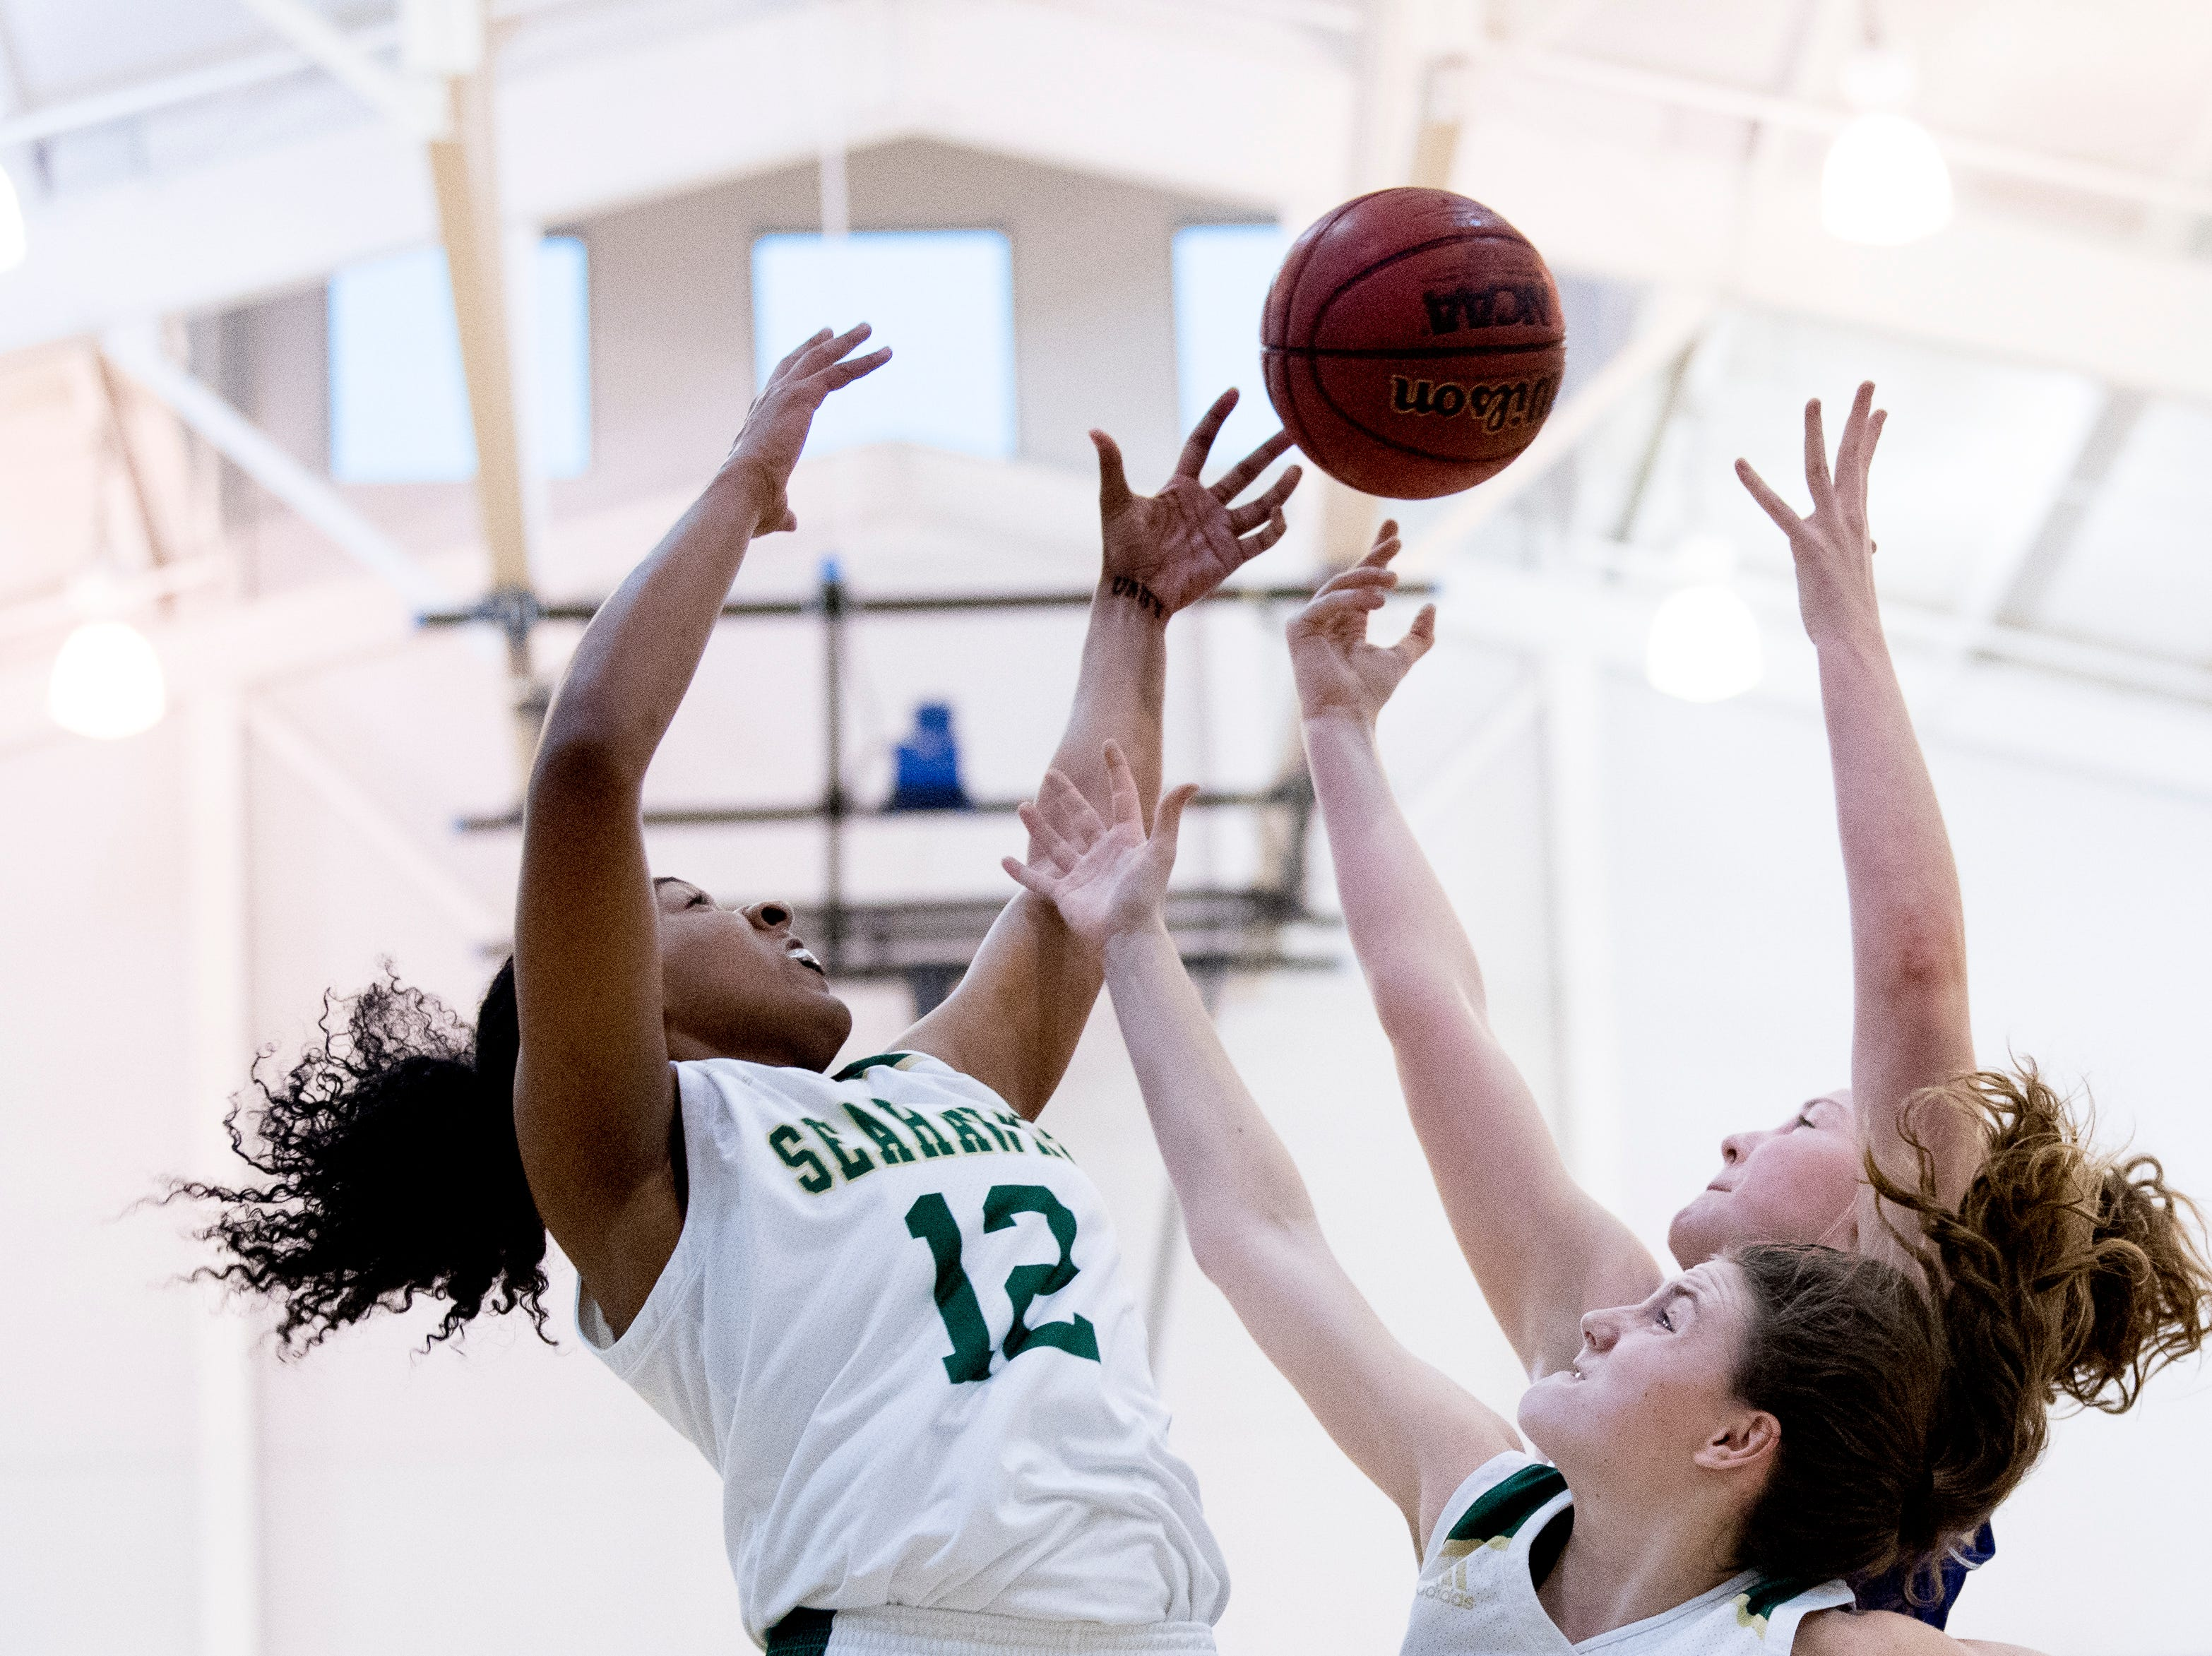 Silverdale's Laney Bone (12) and other Silverdale players battle for the ball during a semifinal game between CAK and Silverdale at Webb School of Knoxville in Knoxville, Tennessee on Friday, February 15, 2019.